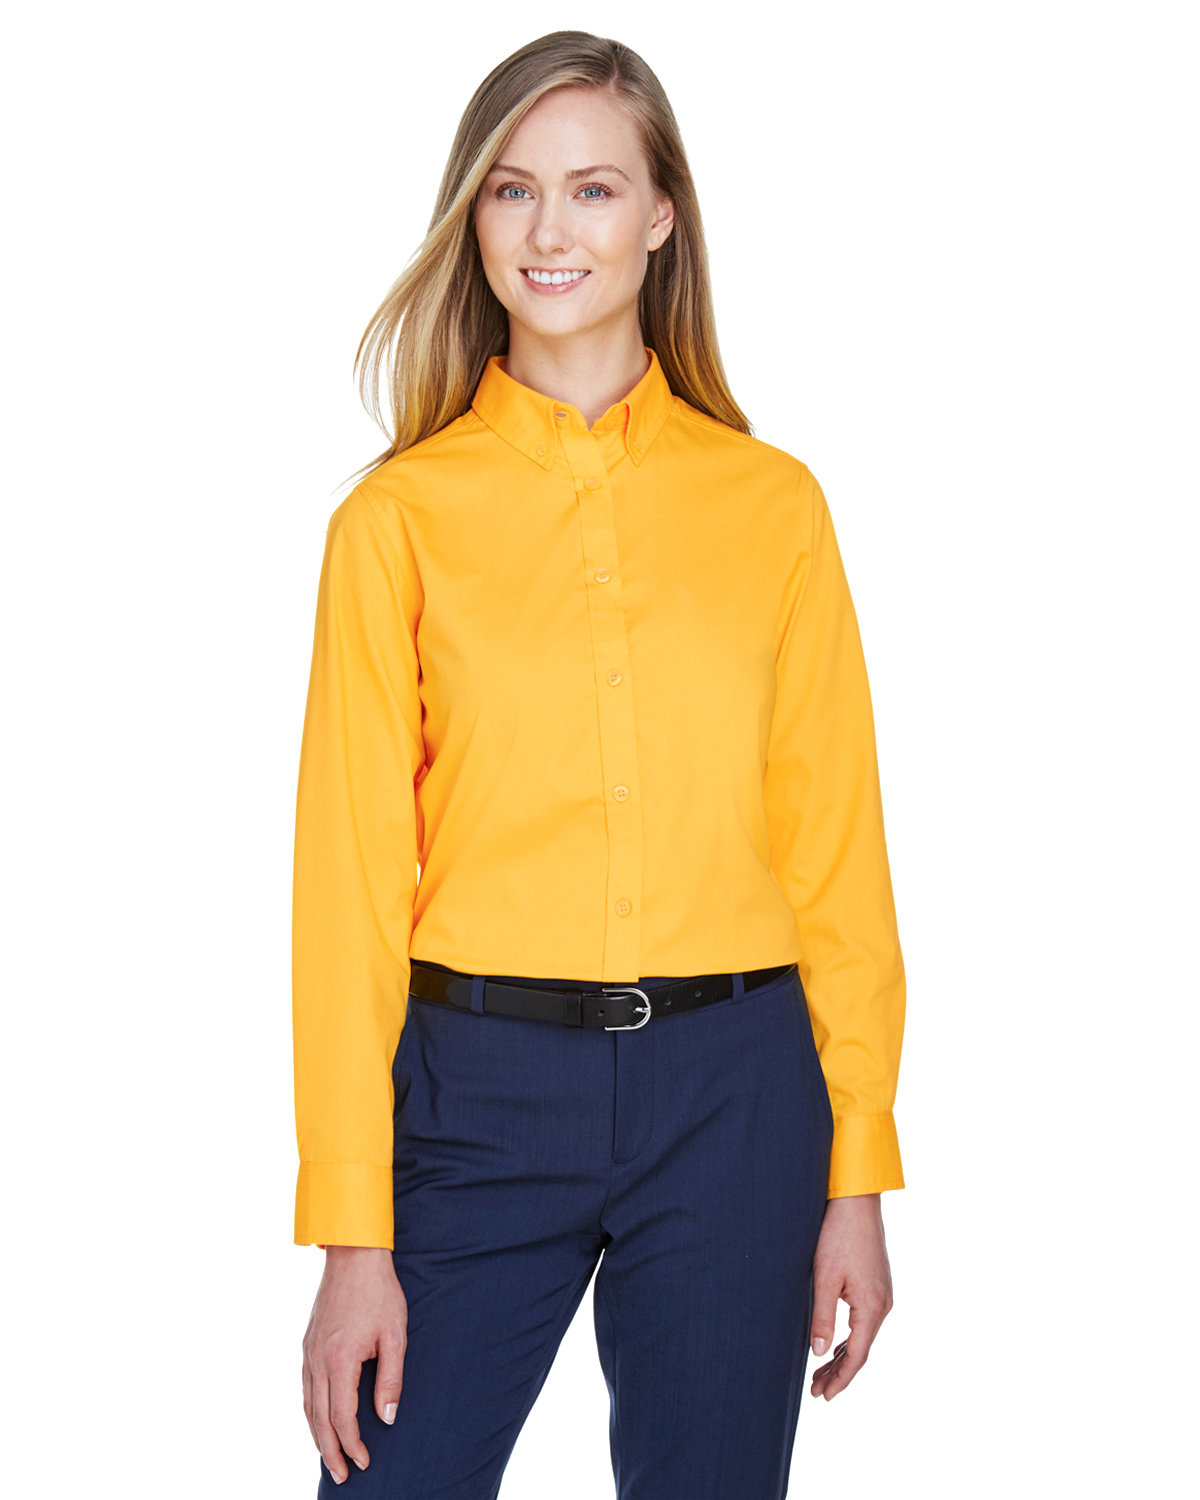 Core 365 Ladies' Operate Long-Sleeve Twill Shirt CAMPUS GOLD